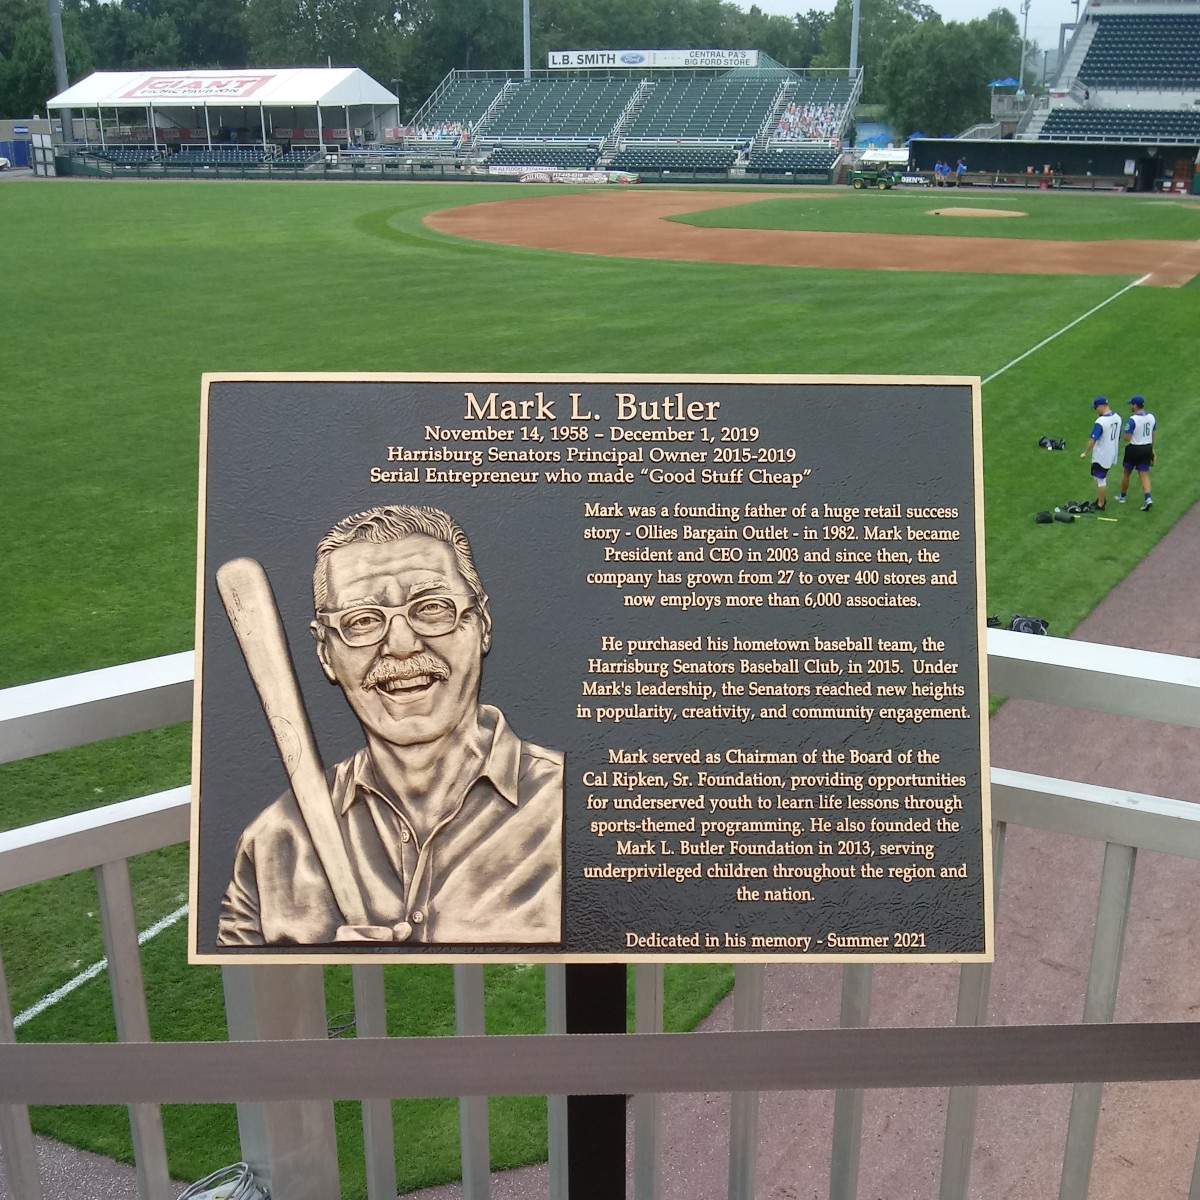 Plaque dedicated to Mark Butler, Senators owner and Ollie's founder, who died after the 2019 season